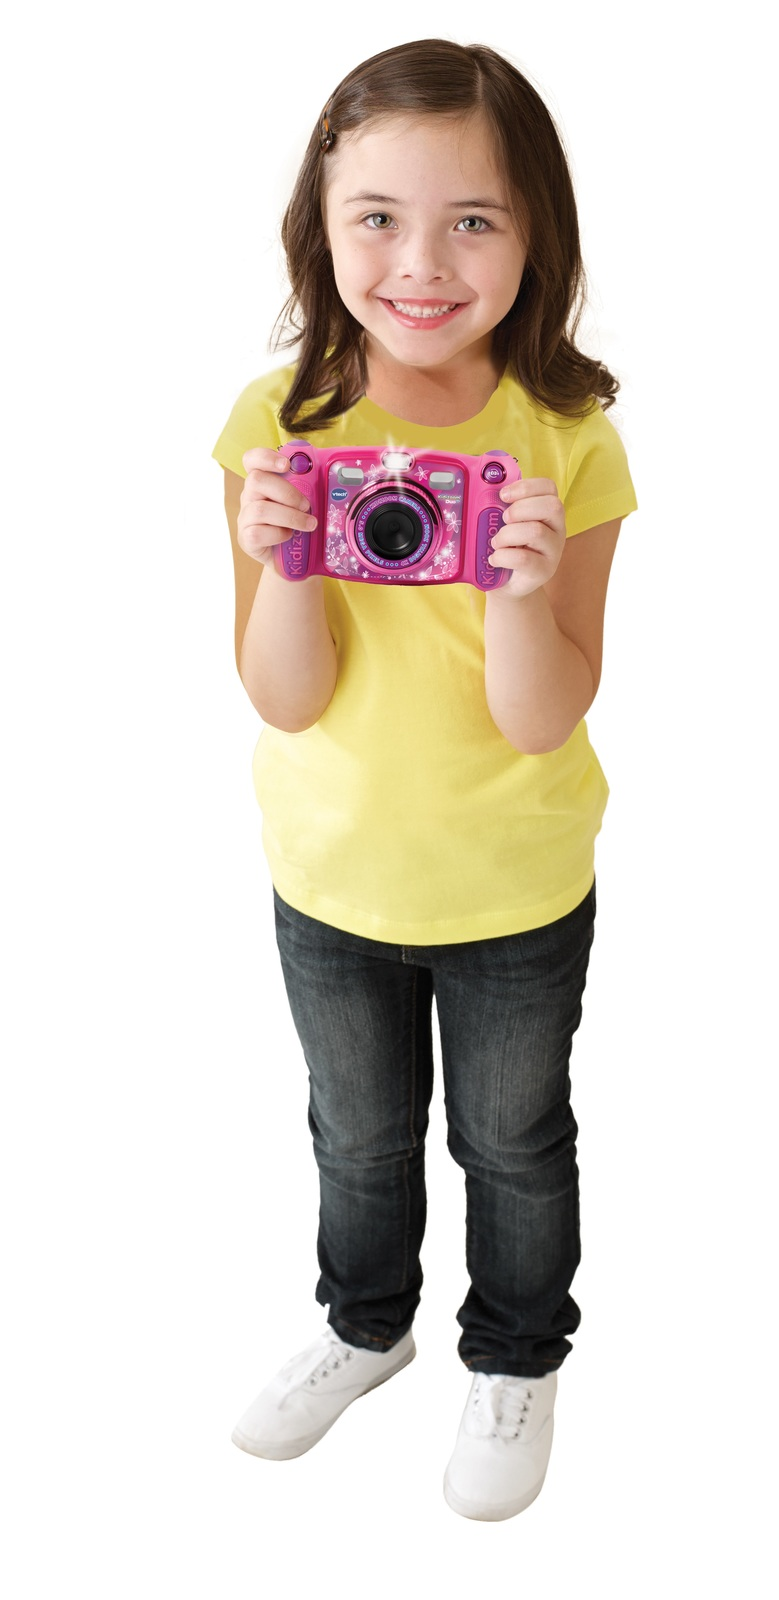 Vtech: Kidizoom Duo 5.0 Camera - (Pink) image